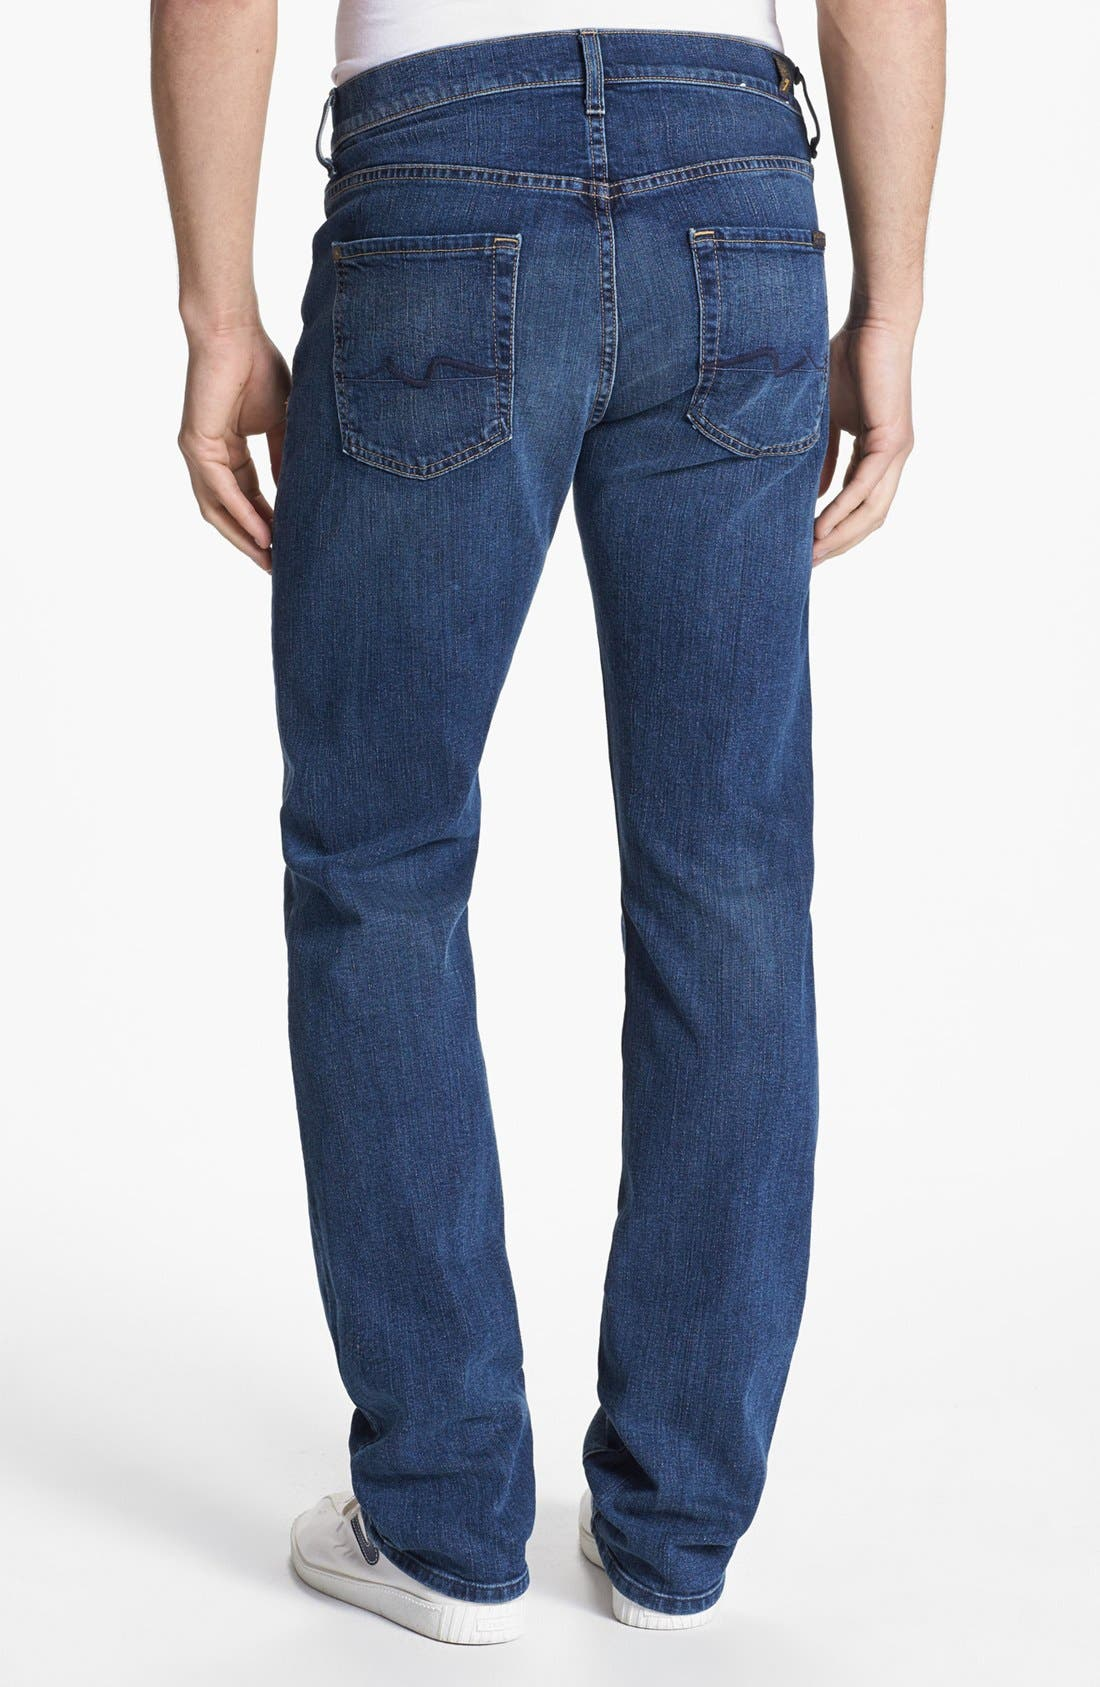 Alternate Image 1 Selected - 7 For All Mankind® 'Carsen' Straight Leg Jeans (Tinted Authentic)